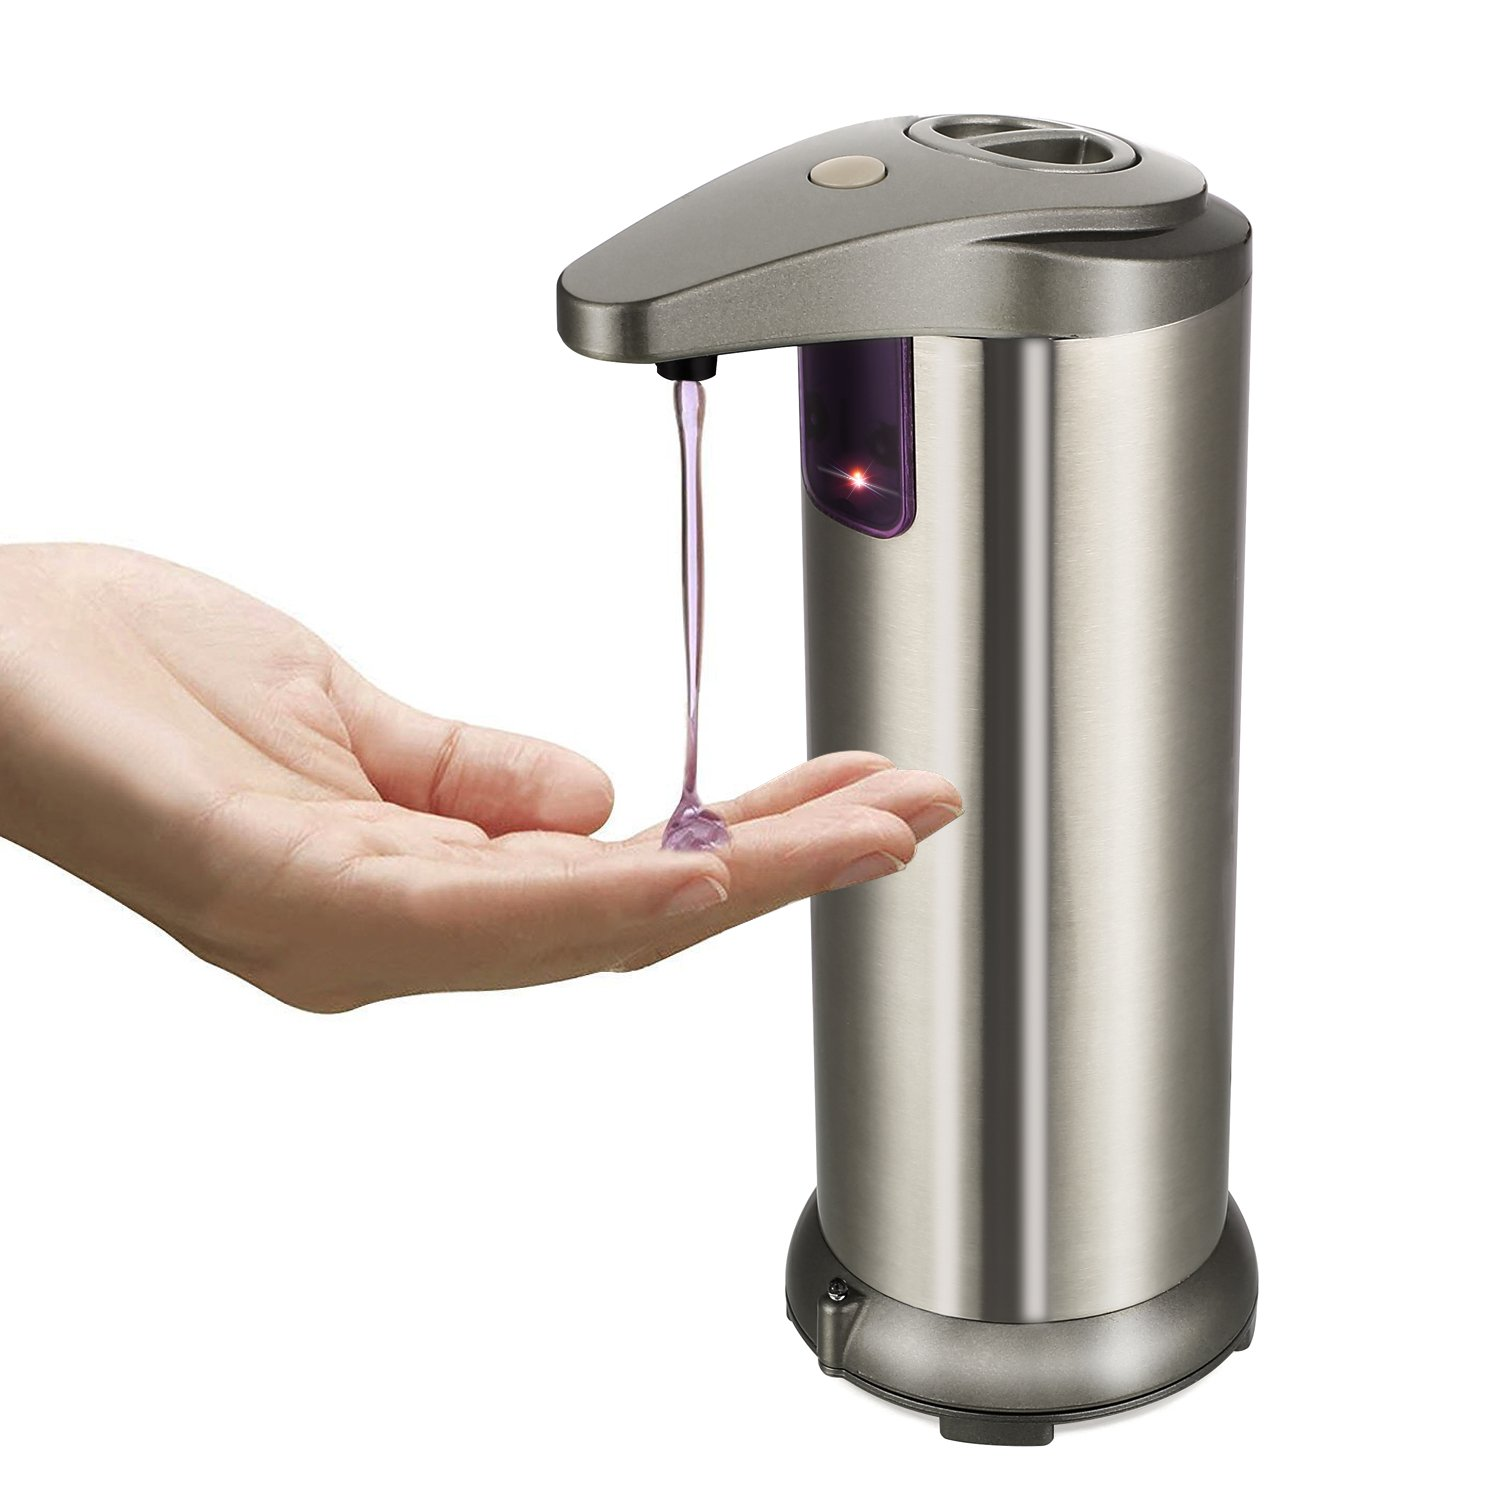 MVPOWER Sensor Soap Dispenser, Touch-Free Automatic Soap Pump with Waterproof Base, R Infrared Motion Sensor Hand Free Dish Soap for Kitchen and Bathroom